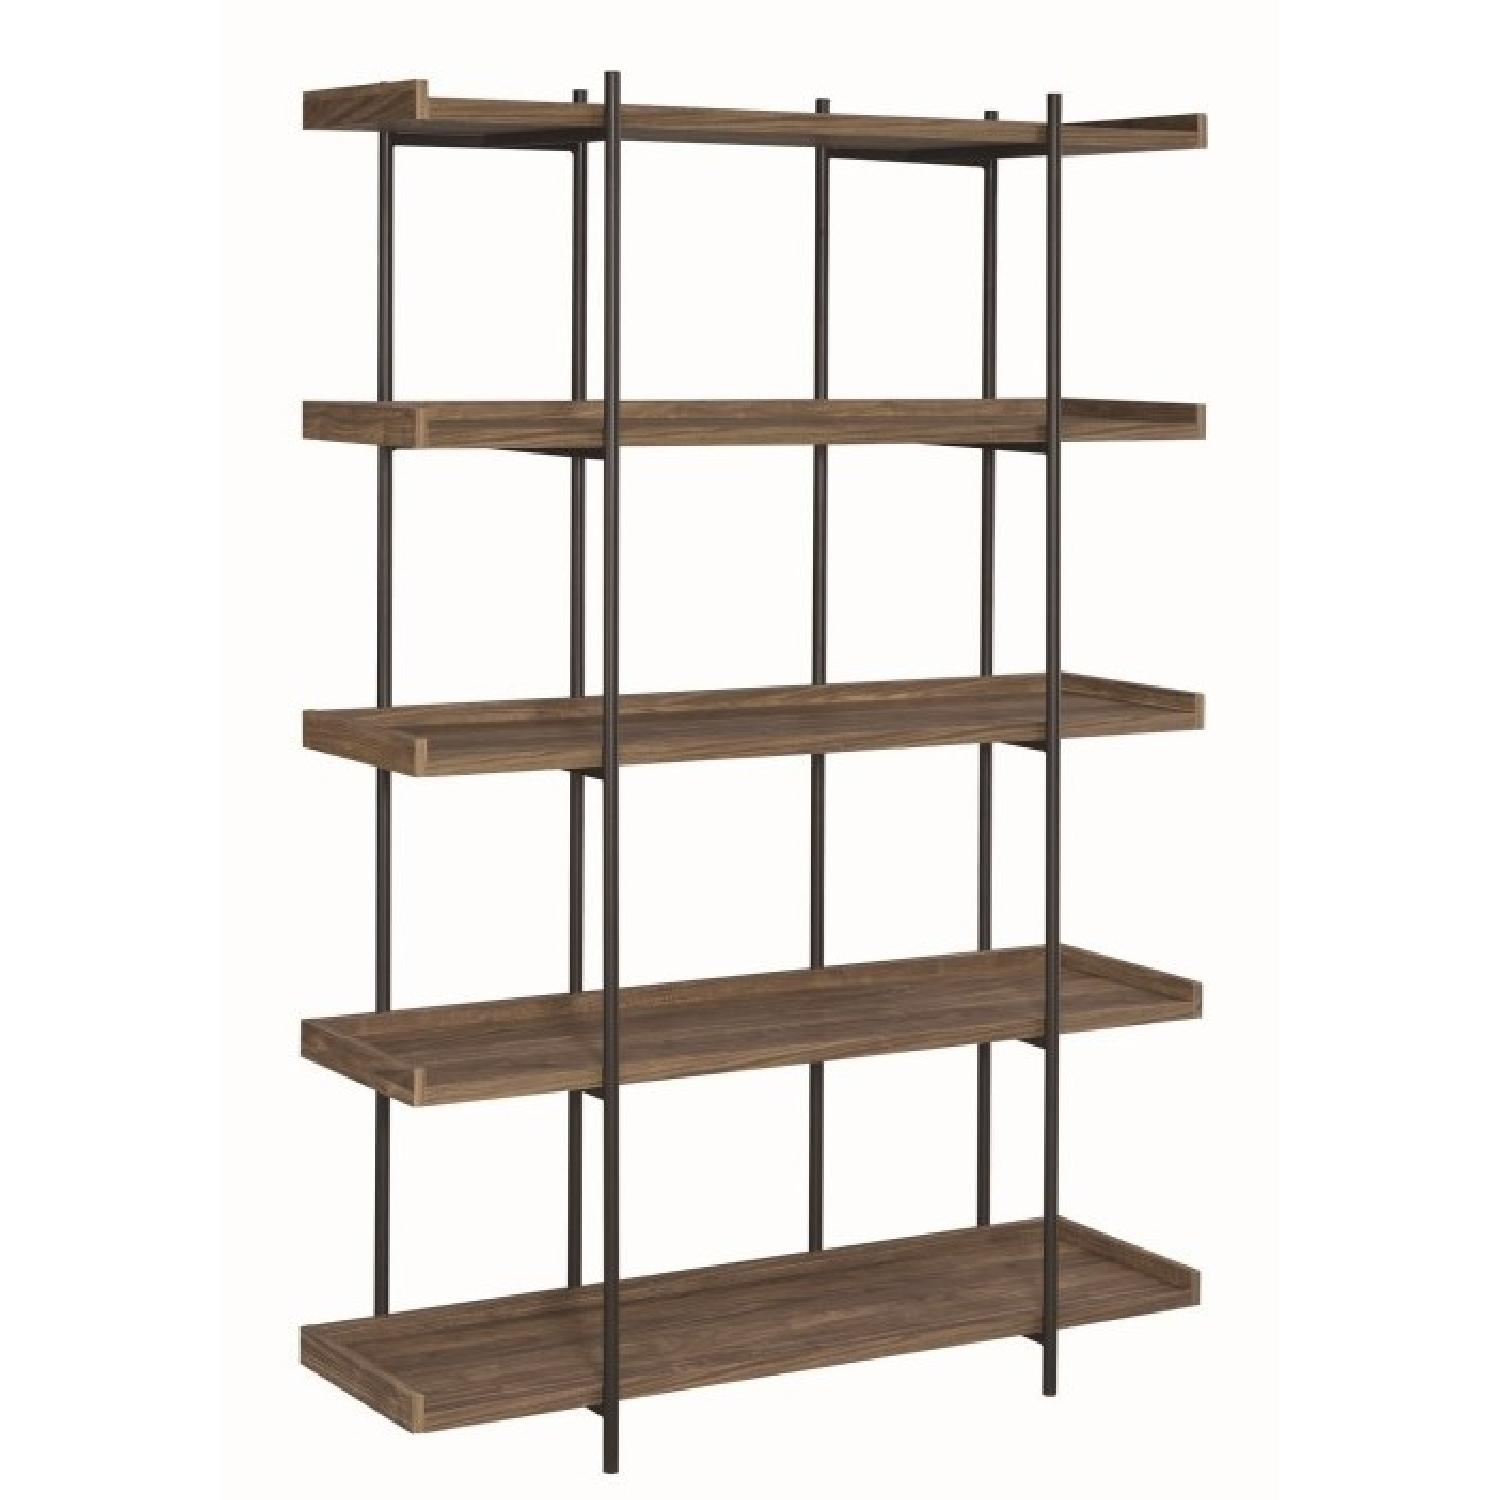 Industrial Style 5-Shelves Bookcase in Aged Walnut Finish - image-0